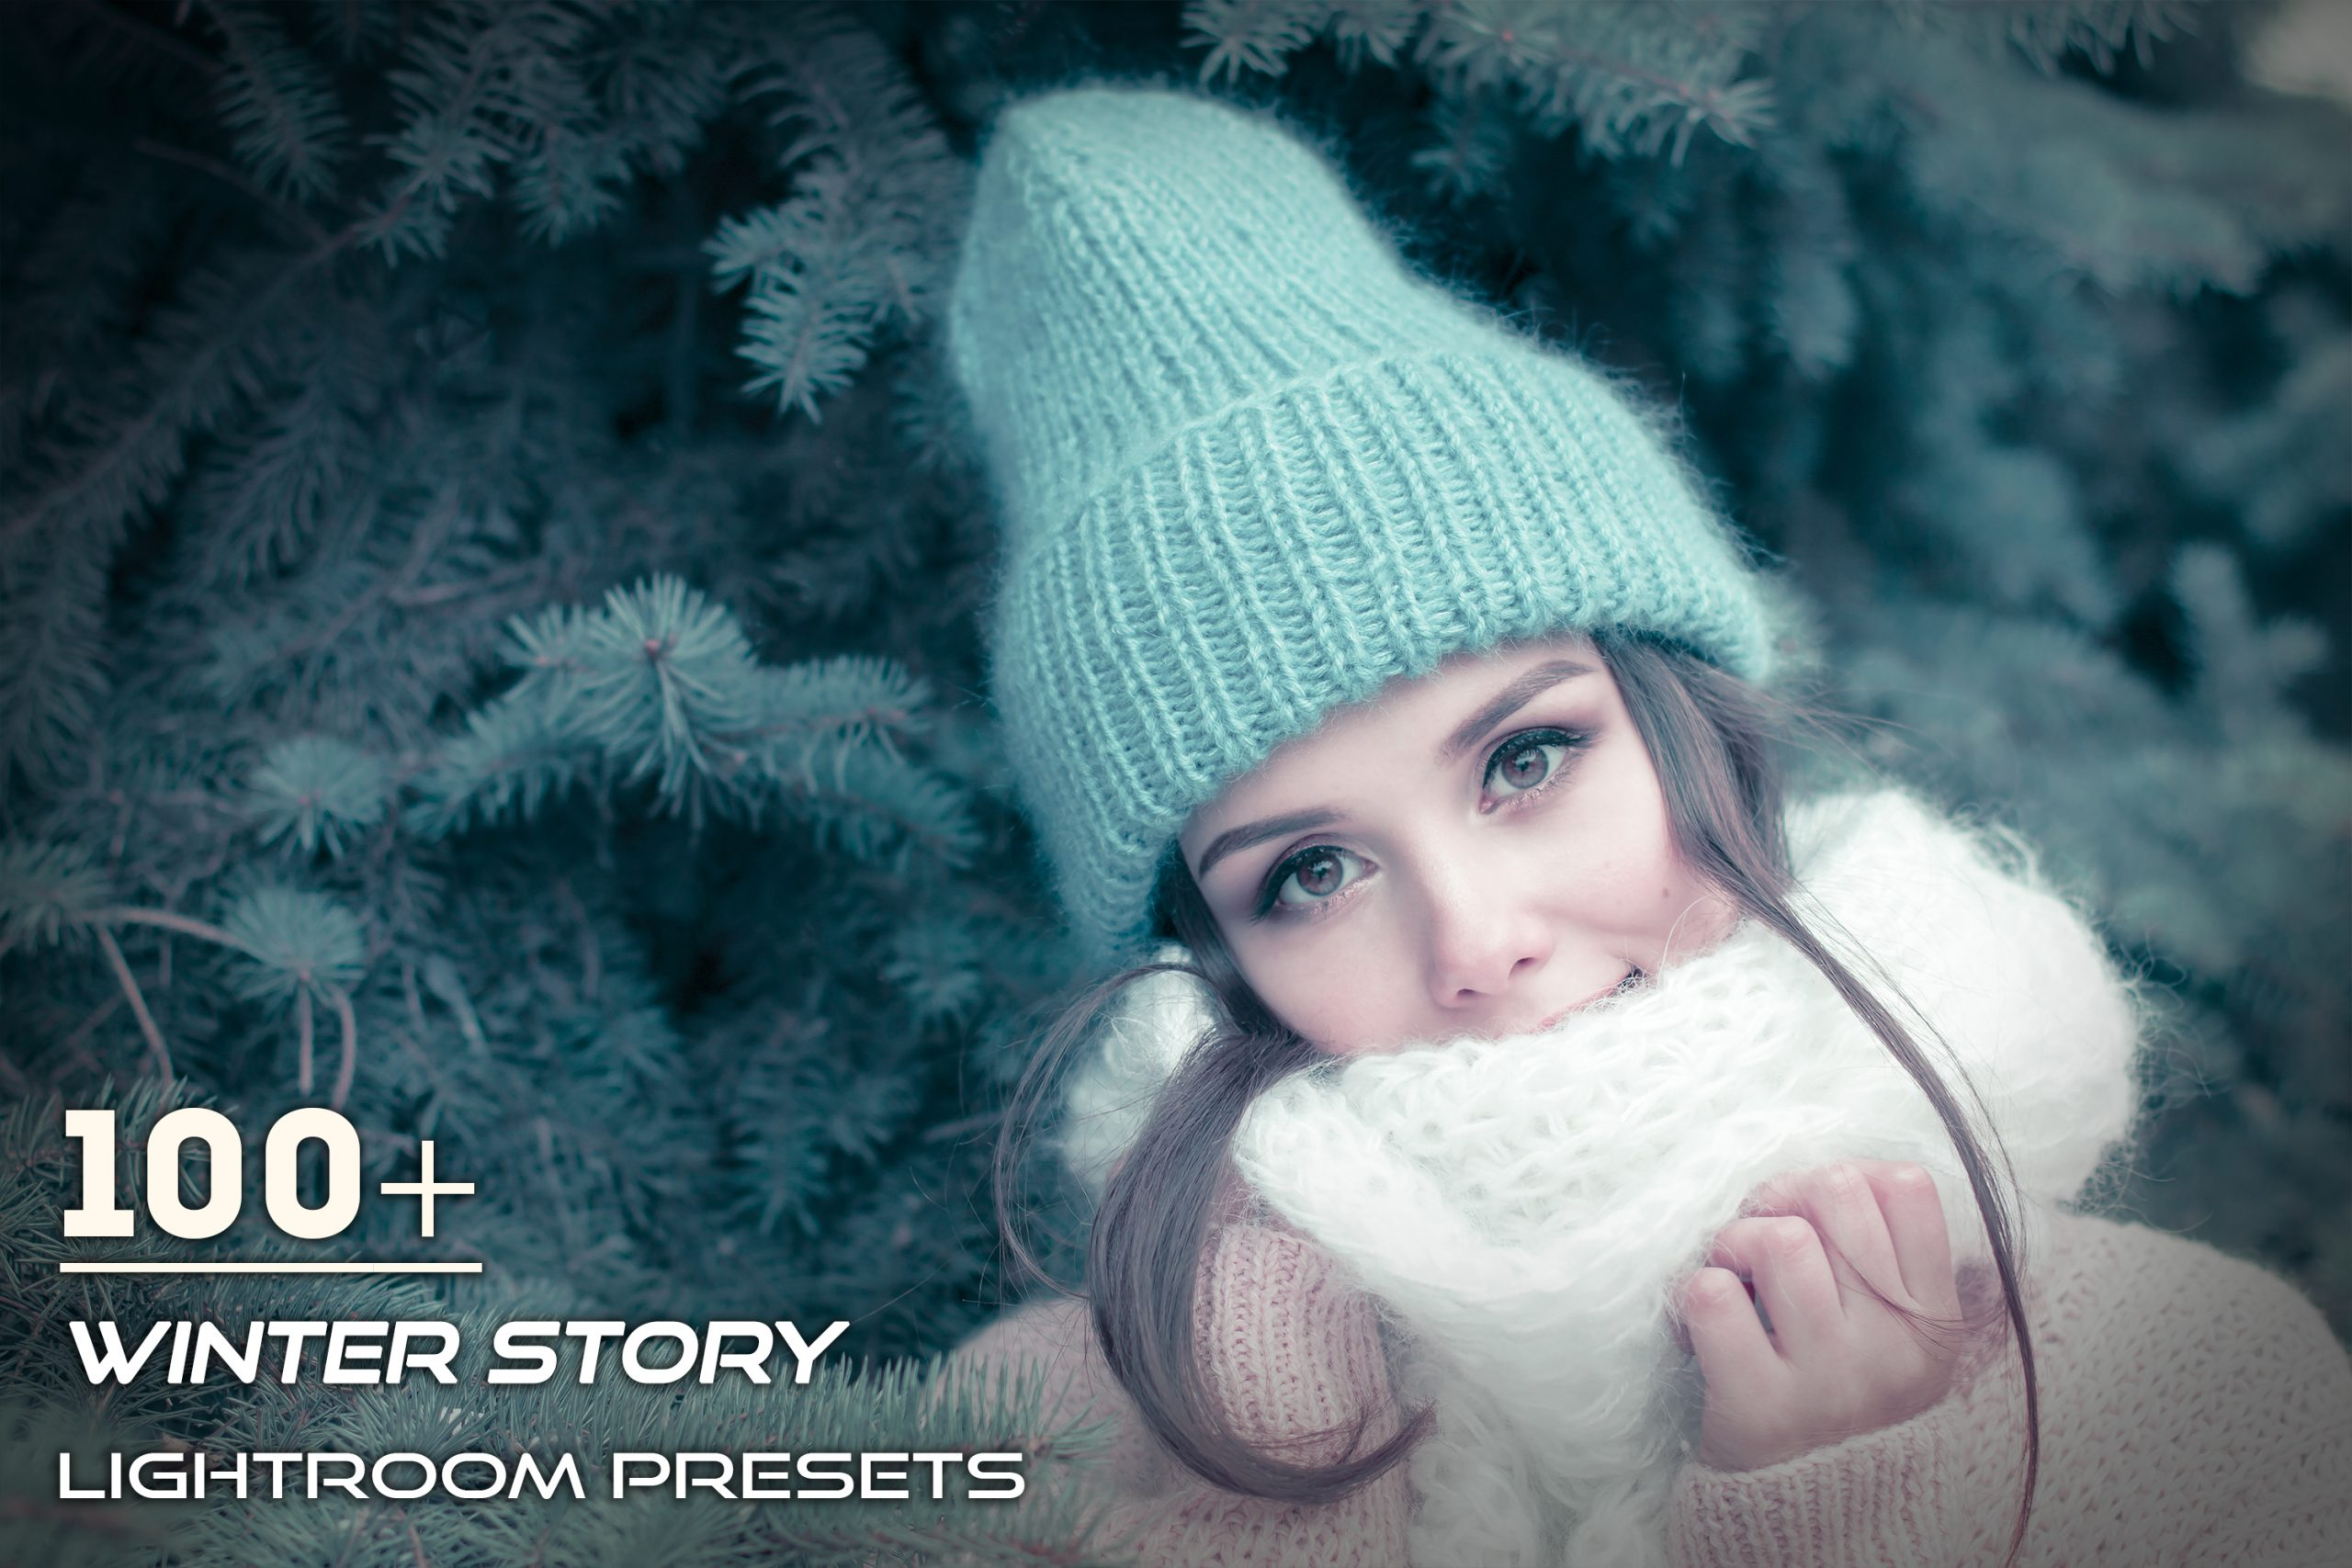 photo presets for winter story